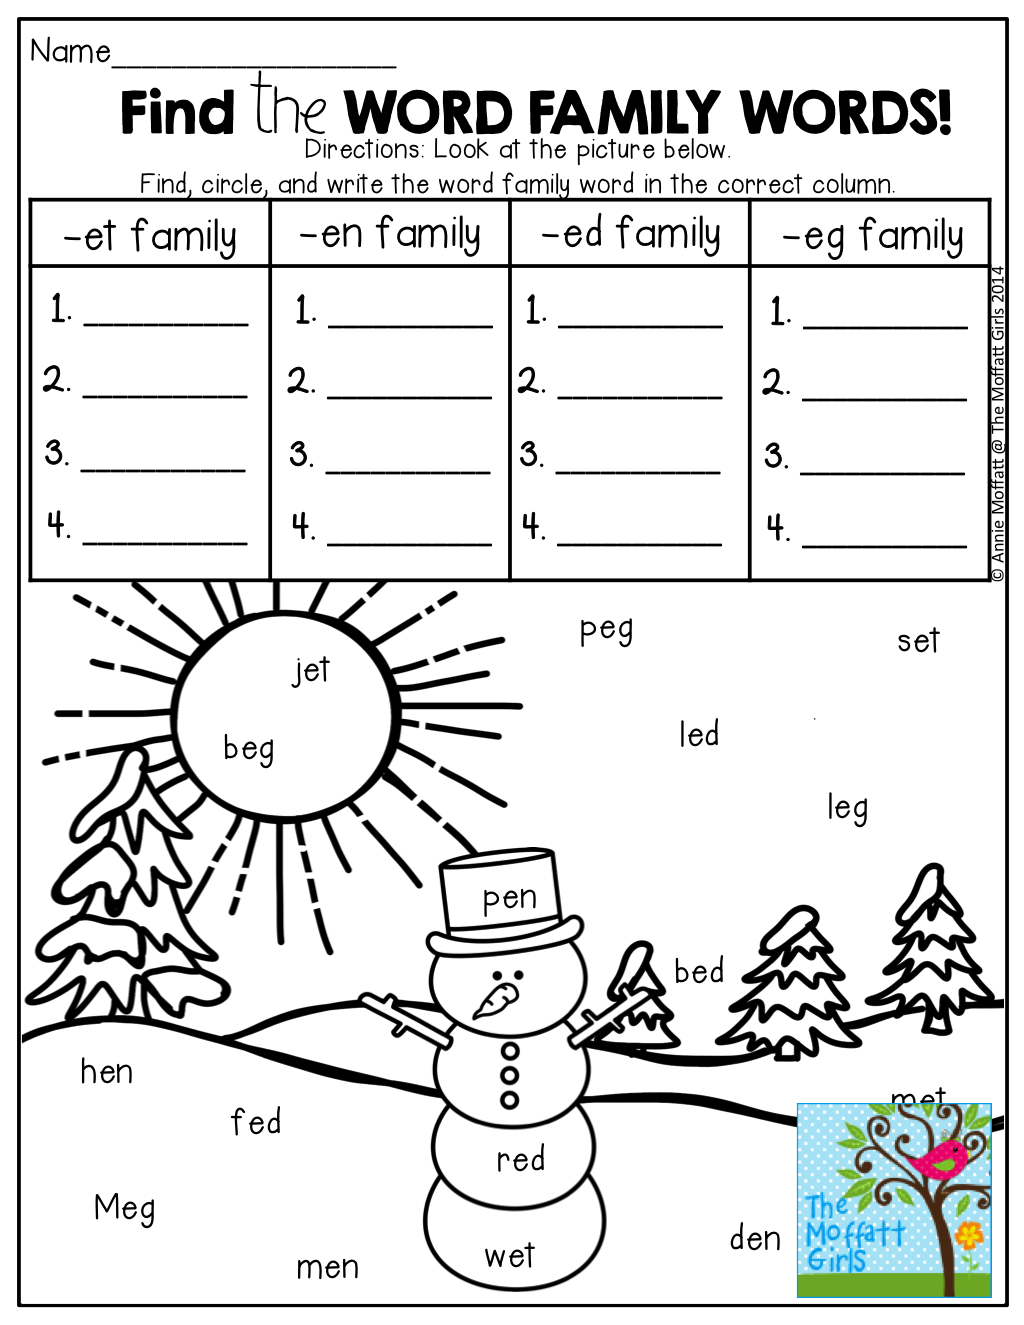 Worksheet For Kindergarten Sing Words